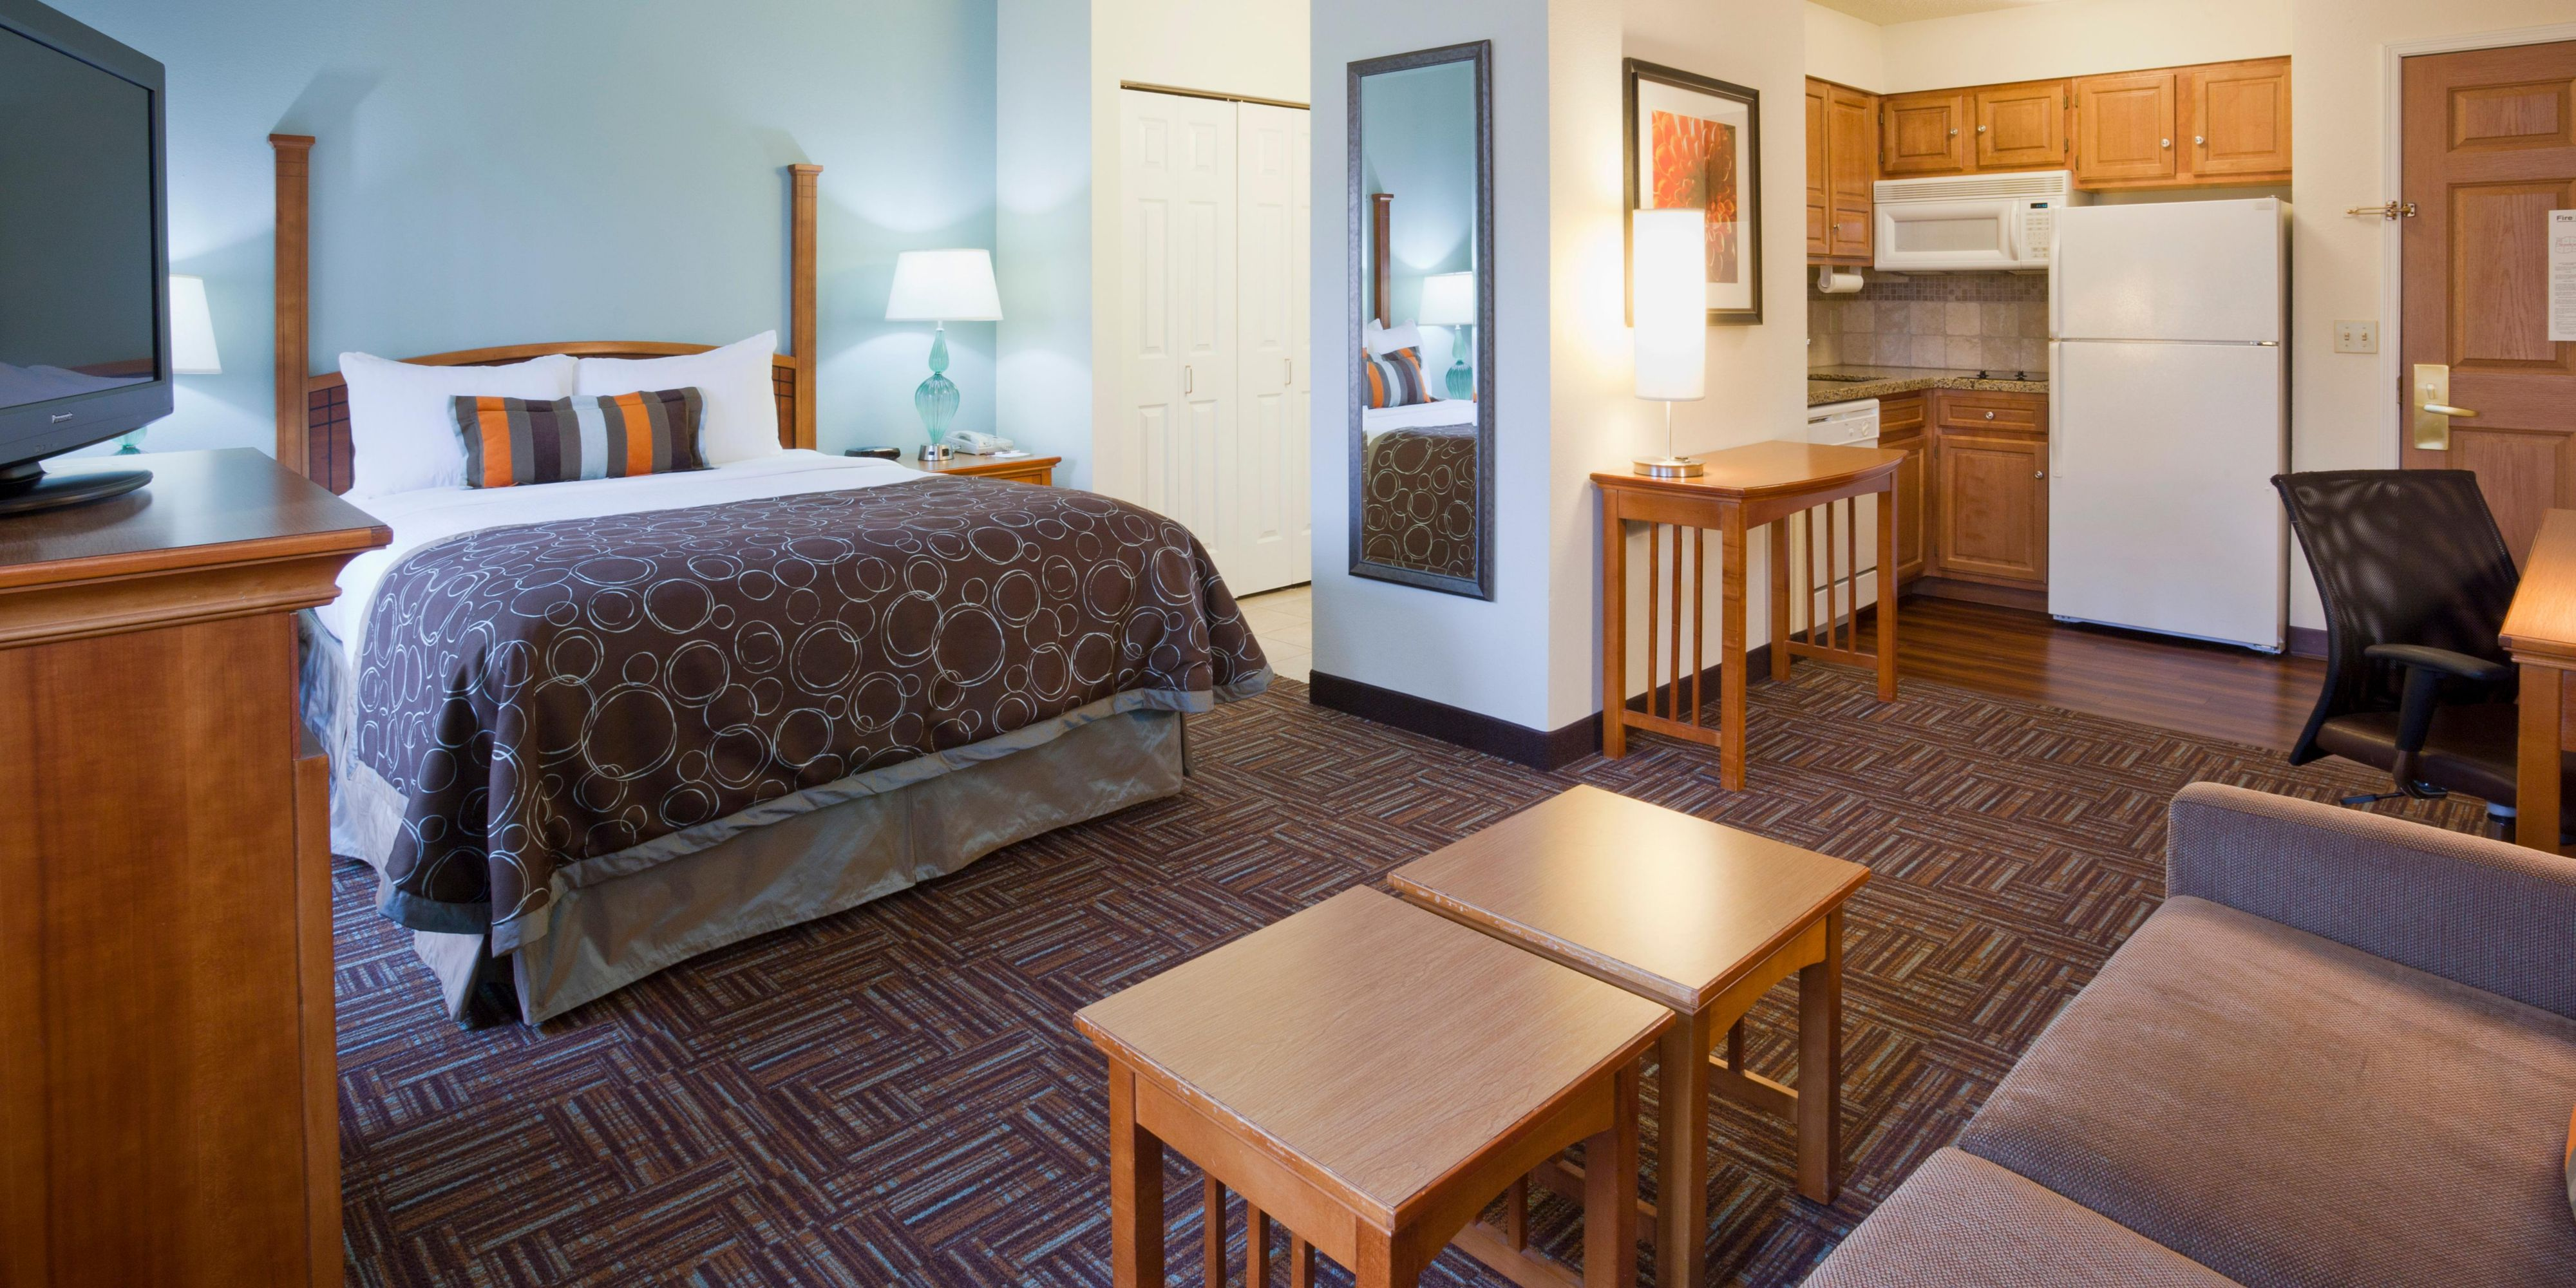 spa spectacular suite romantic and of rooms resort room with tub lake an the sugar suites lodging views top s mn in lodge come hot